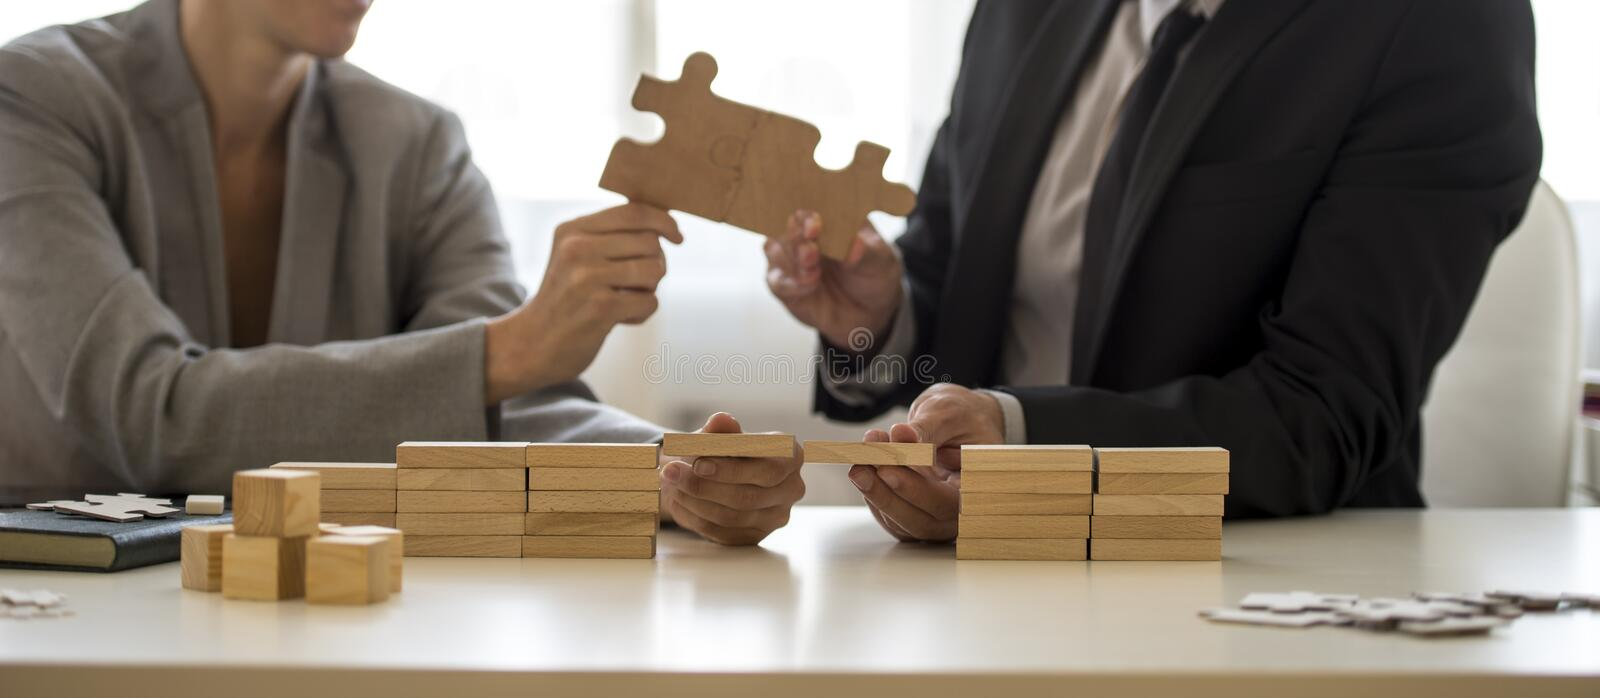 Teamwork or partnership concept with a businessman and businesswoman royalty free stock images